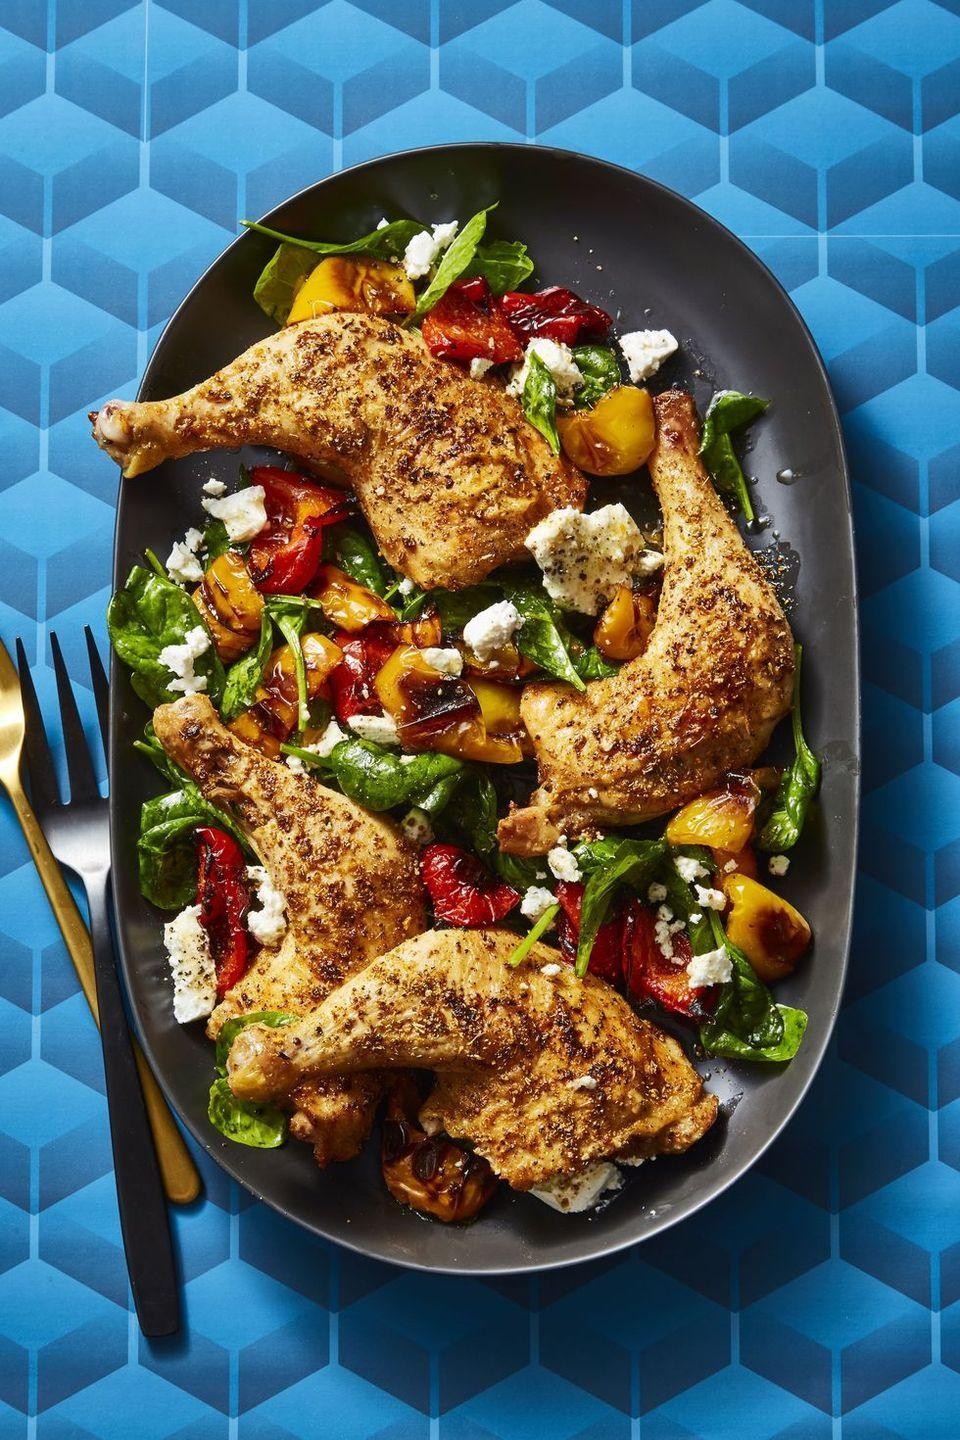 """<p>A bed of spinach and creamy feta play host to earthy roasted chicken legs.</p><p><em><a href=""""https://www.goodhousekeeping.com/food-recipes/easy/a25656846/fennel-roasted-chicken-and-peppers-recipe/"""" rel=""""nofollow noopener"""" target=""""_blank"""" data-ylk=""""slk:Get the recipe for Fennel Roasted Chicken and Peppers »"""" class=""""link rapid-noclick-resp"""">Get the recipe for Fennel Roasted Chicken and Peppers »</a></em></p>"""